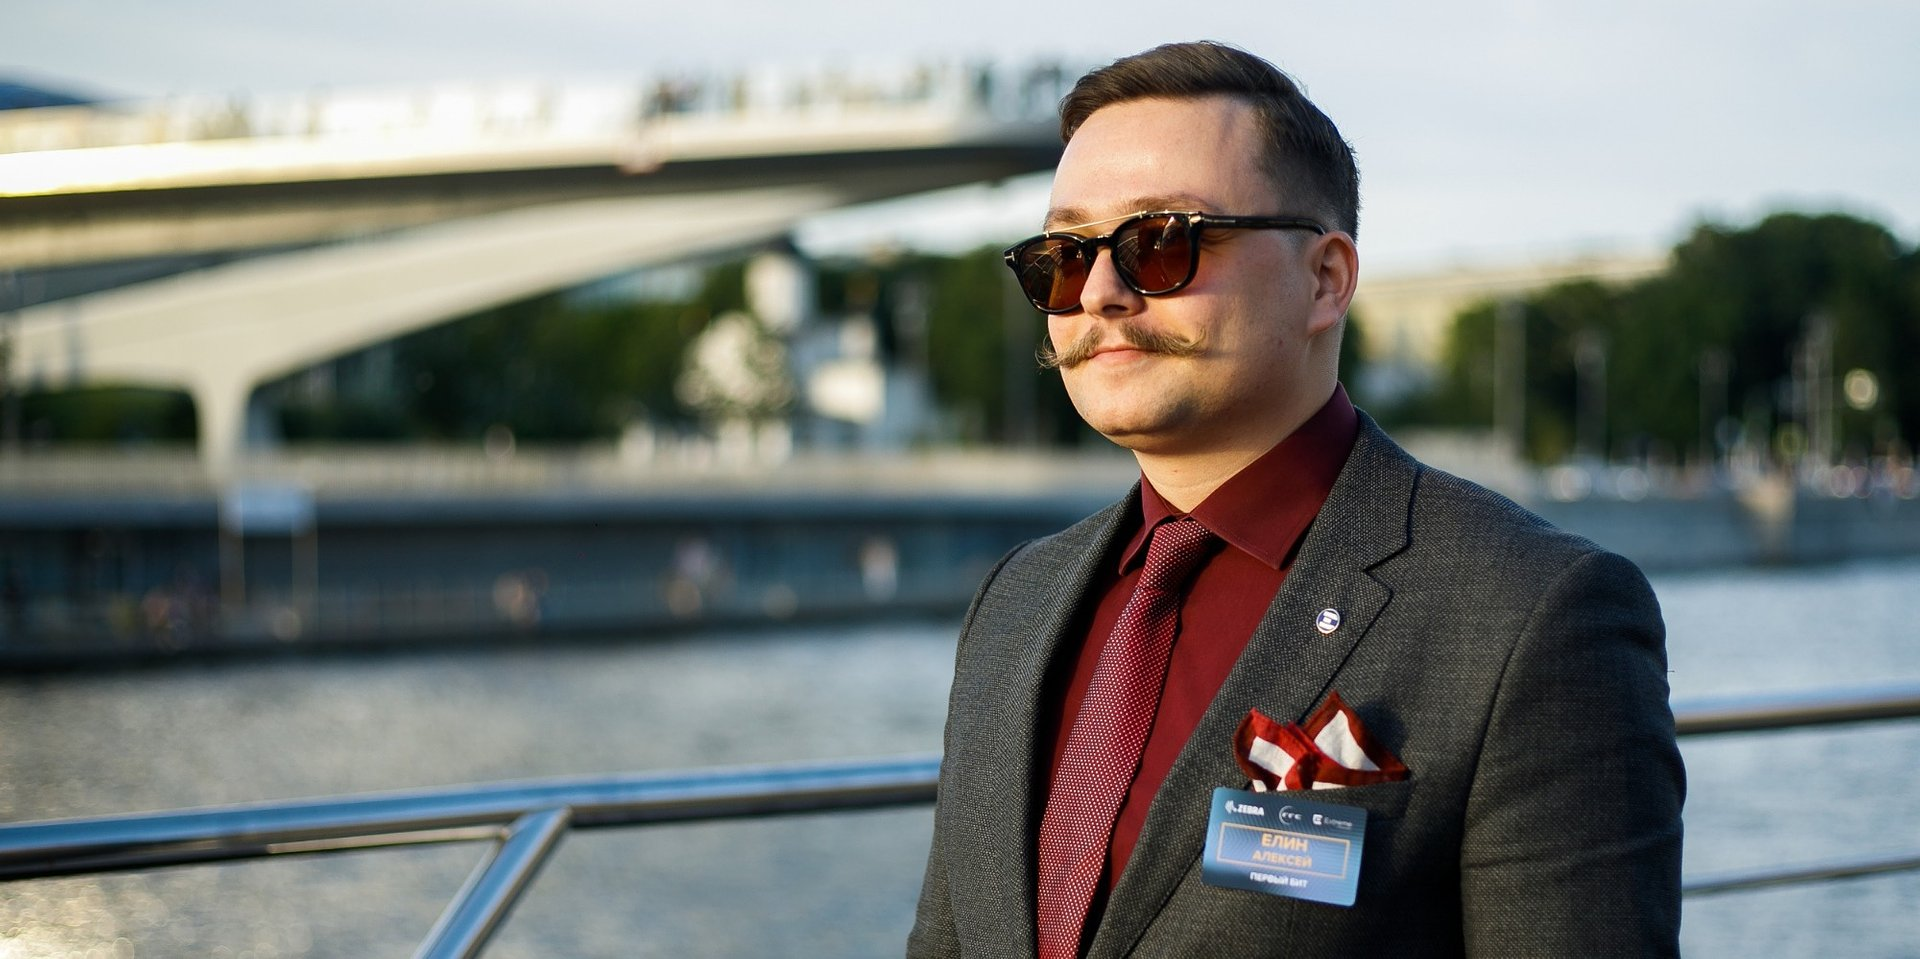 Suit up! An interview with Alexey Elin